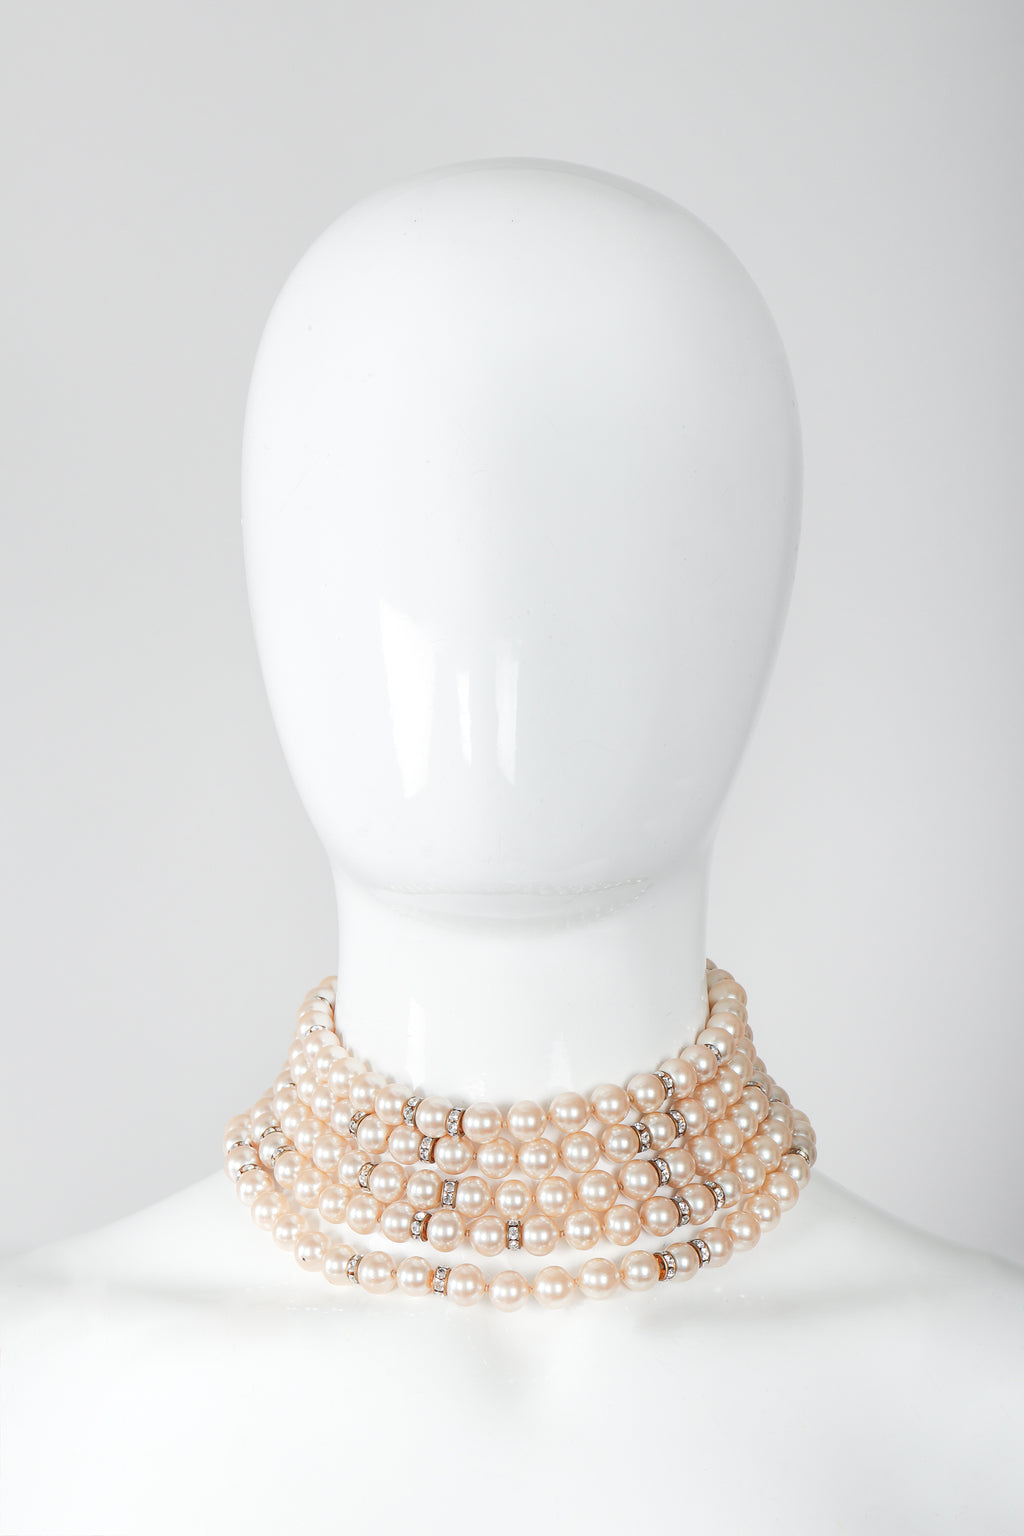 Recess Vintage Prince Kamy Yar 5-Strand Faux Pearl Necklace on Mannequin